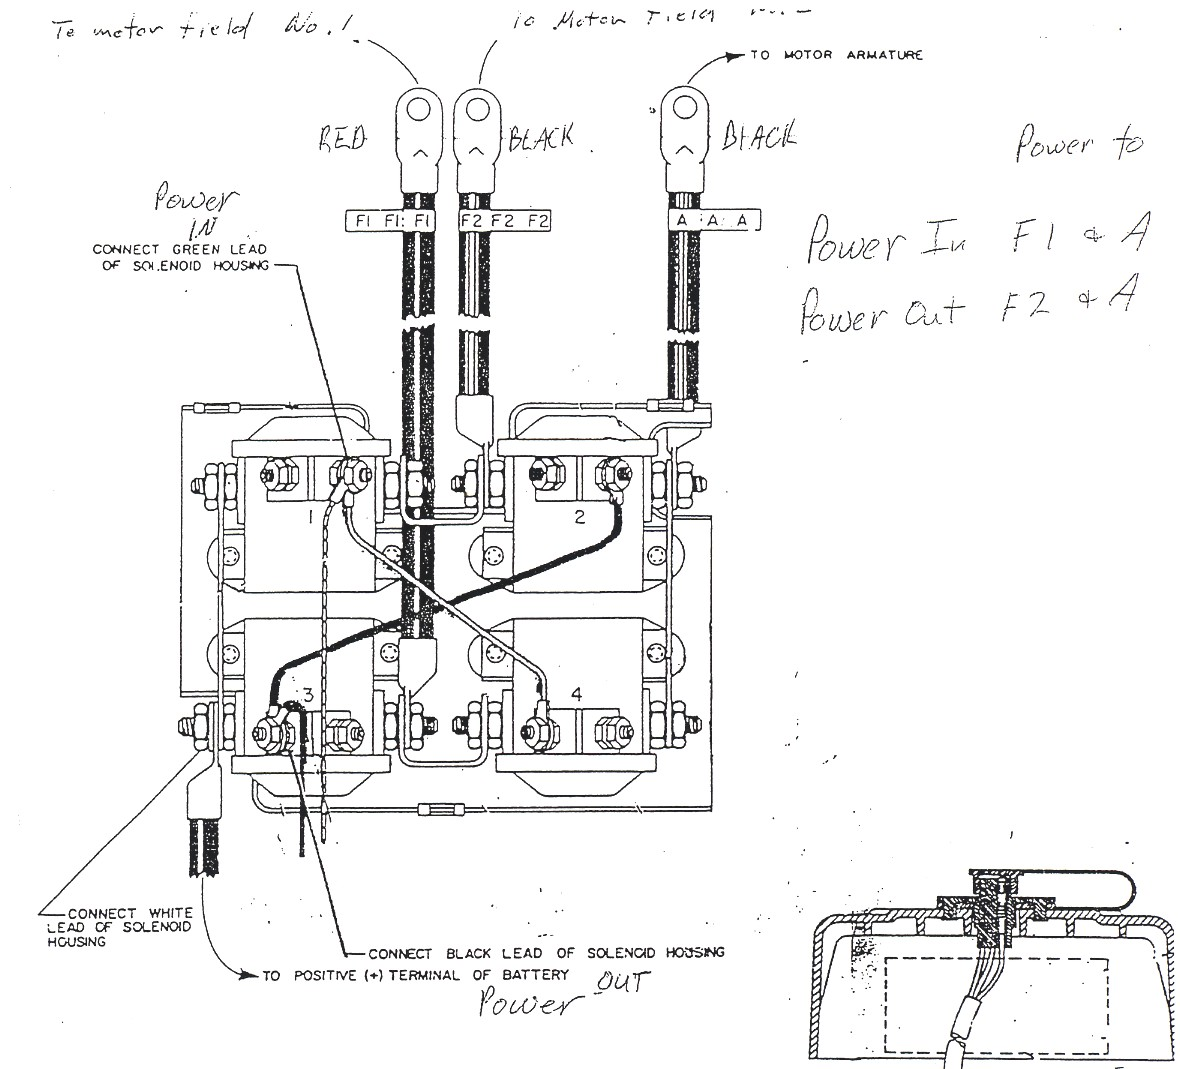 need help wiring winch if someone could look over my diagram please Ramsey Winch Solenoid Diagram